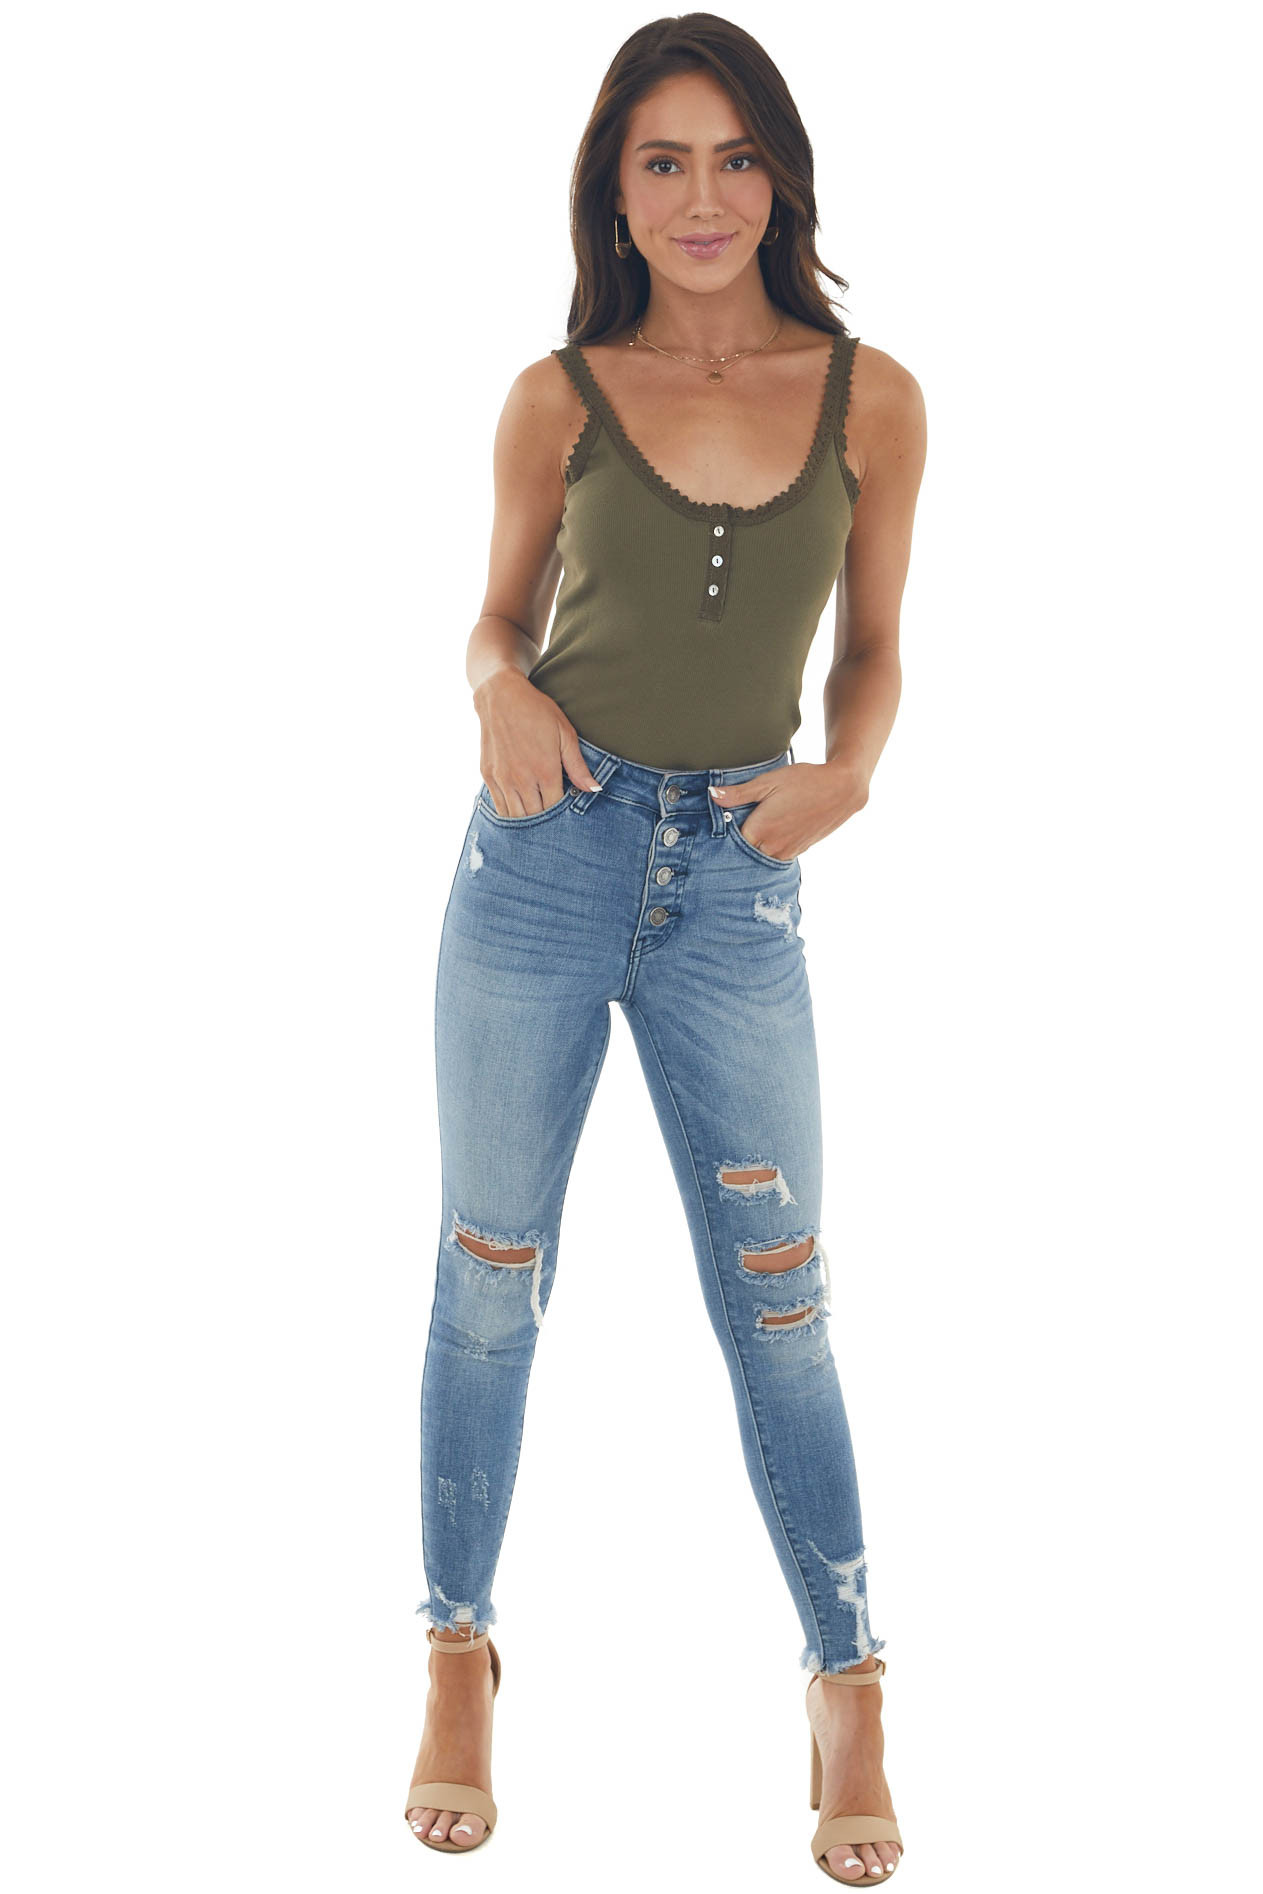 Olive Ribbed Knit Tank Top with Button and Lace Trim Details